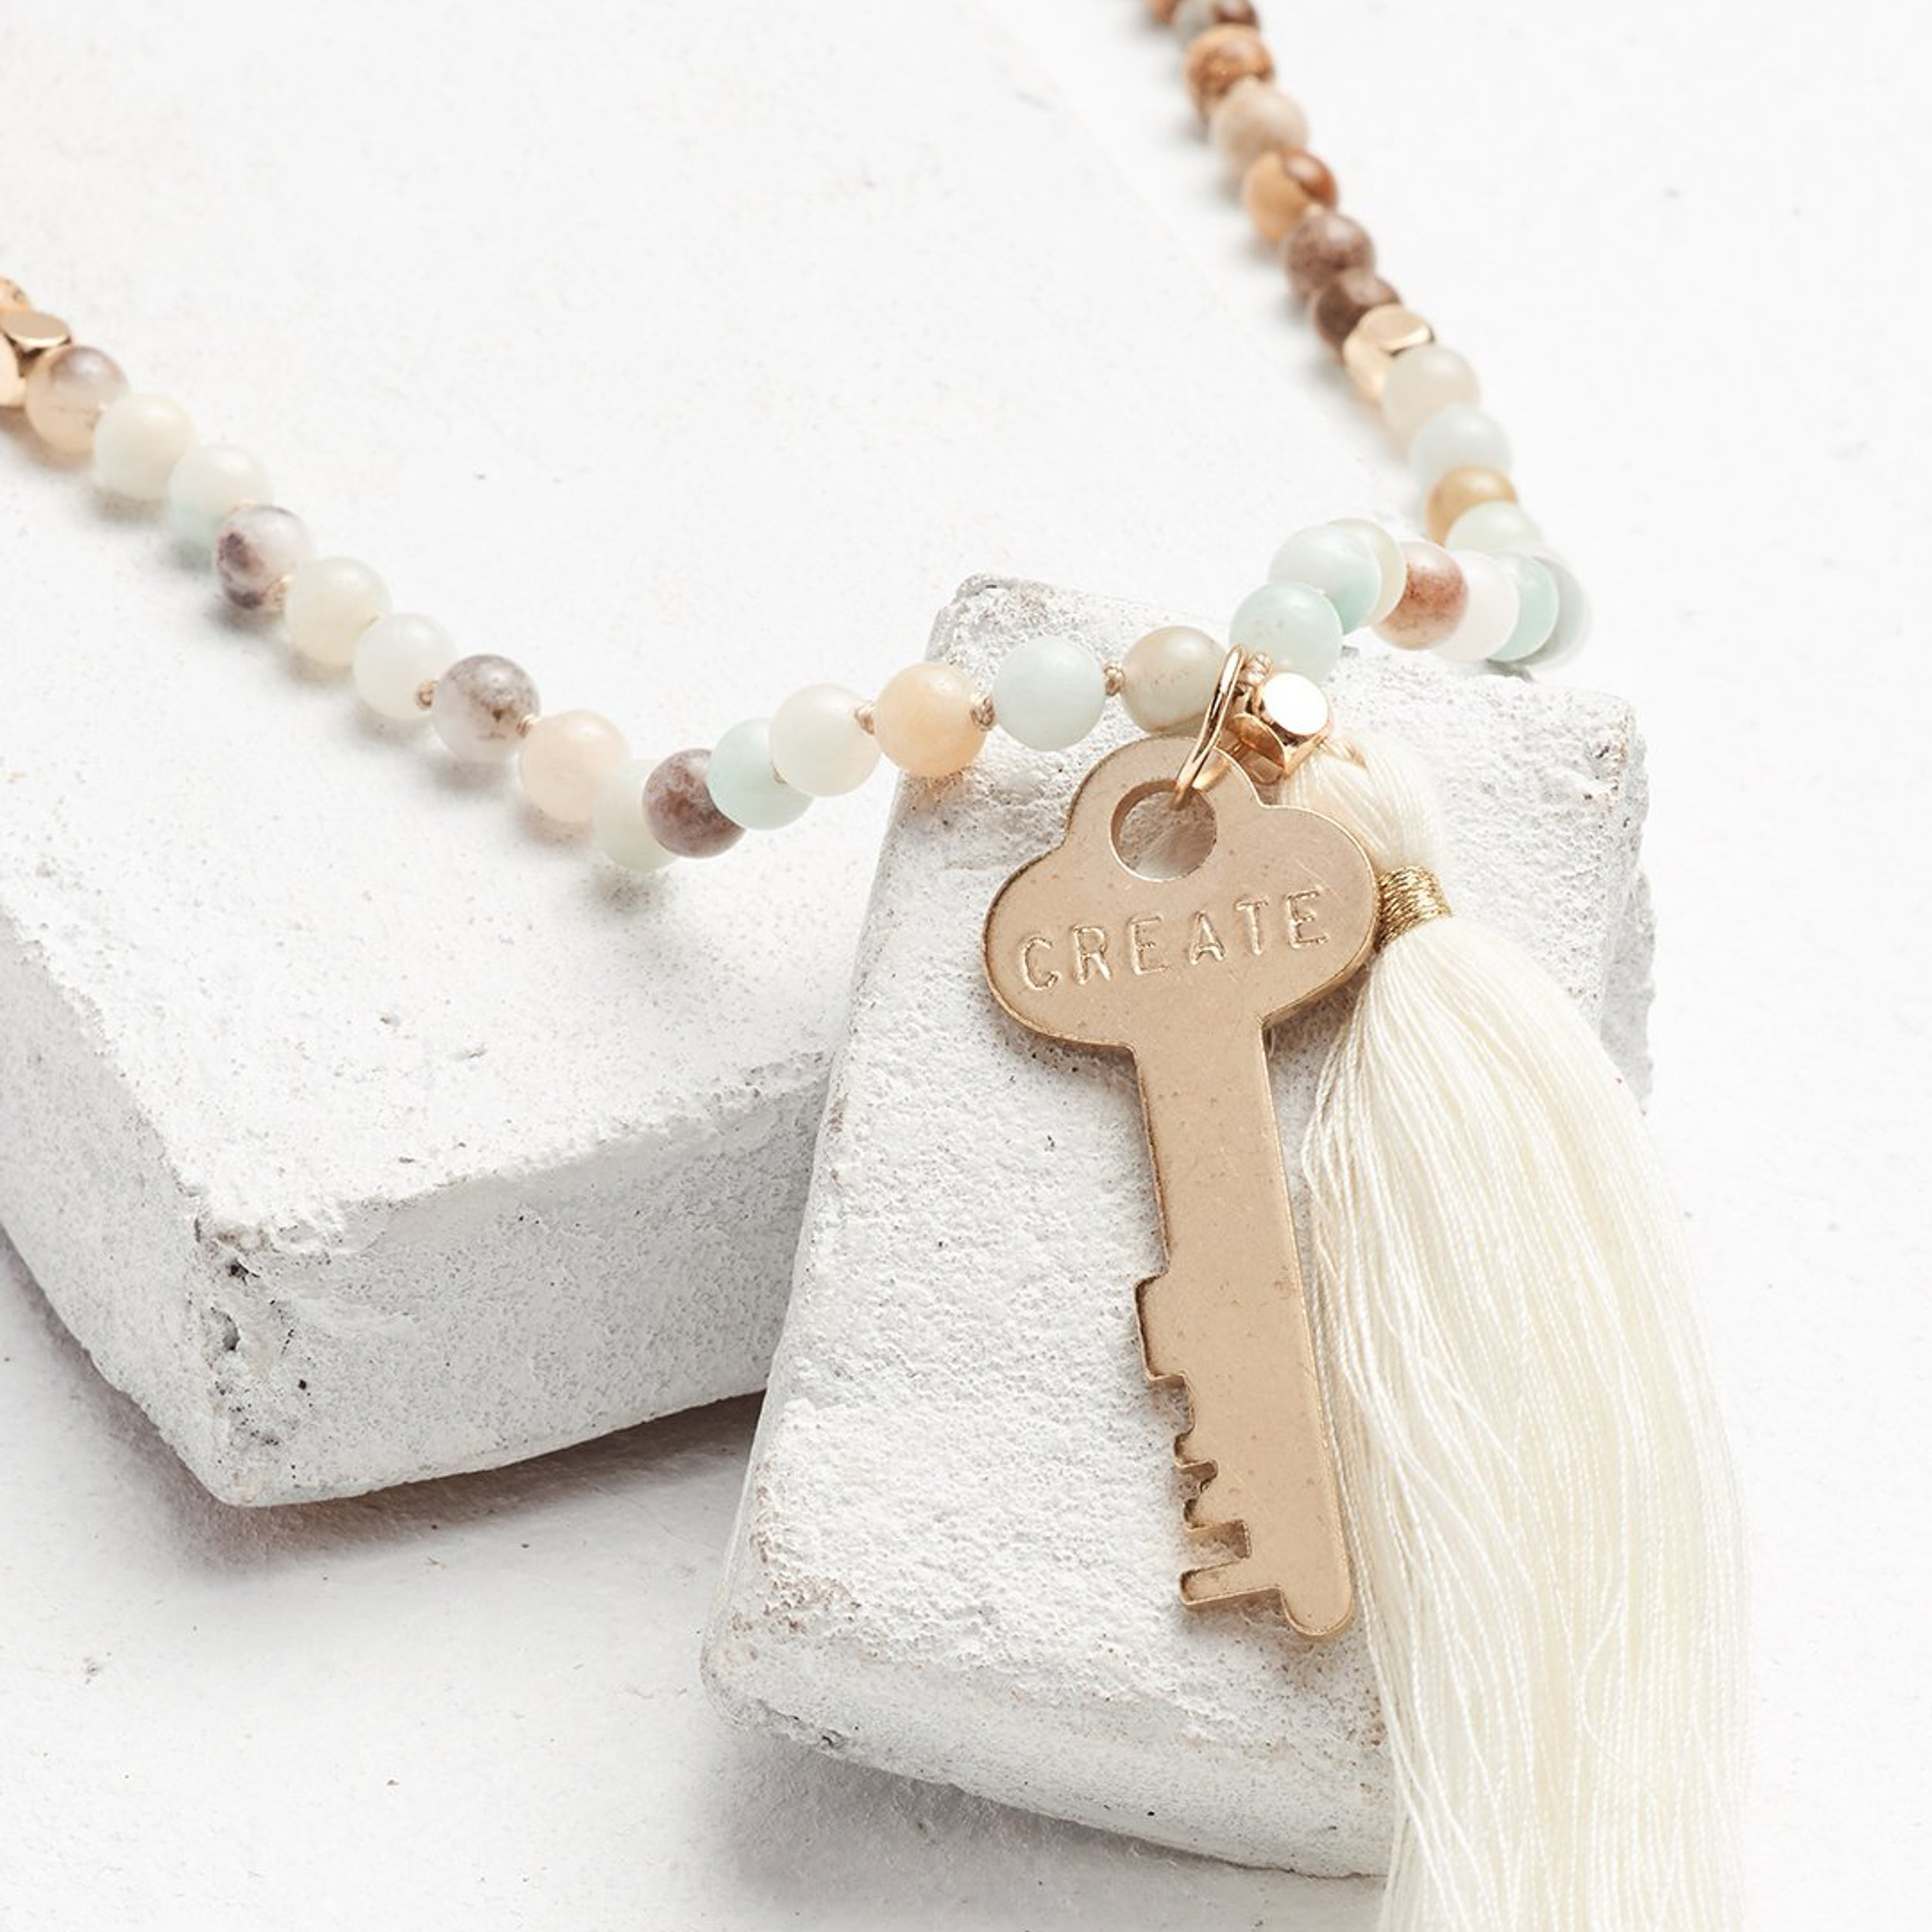 Giving Keys Bead Necklace $48